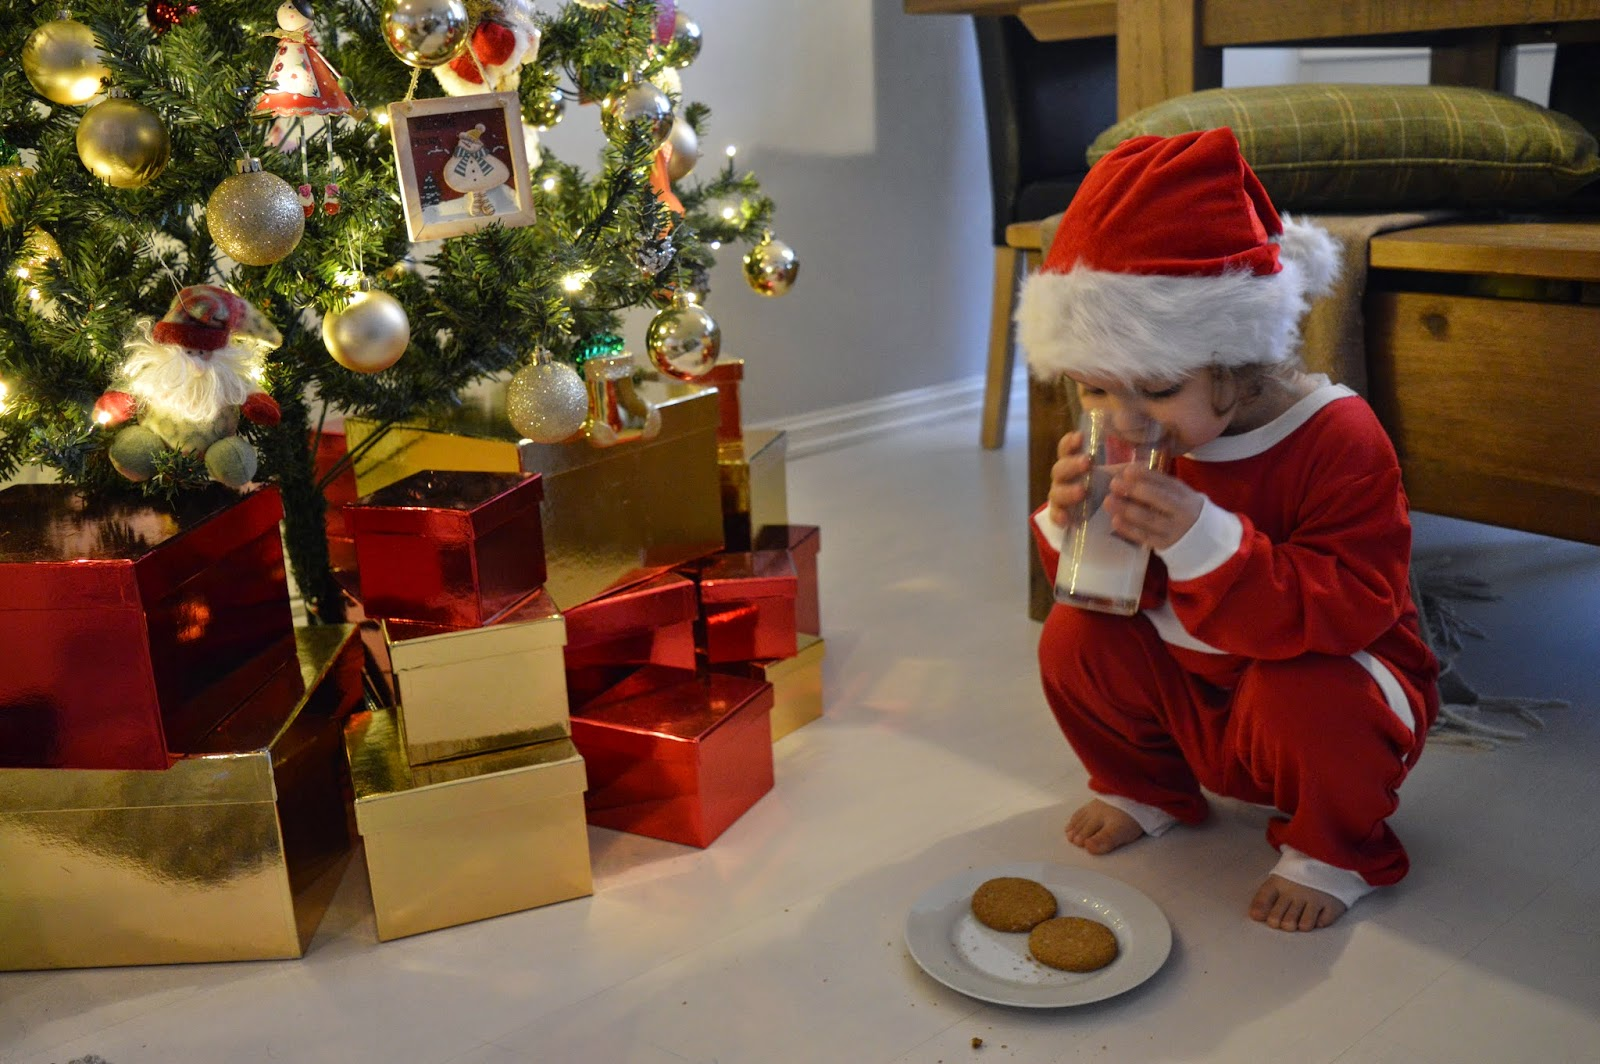 My Modern Mummy: Merry Christmas from Norway